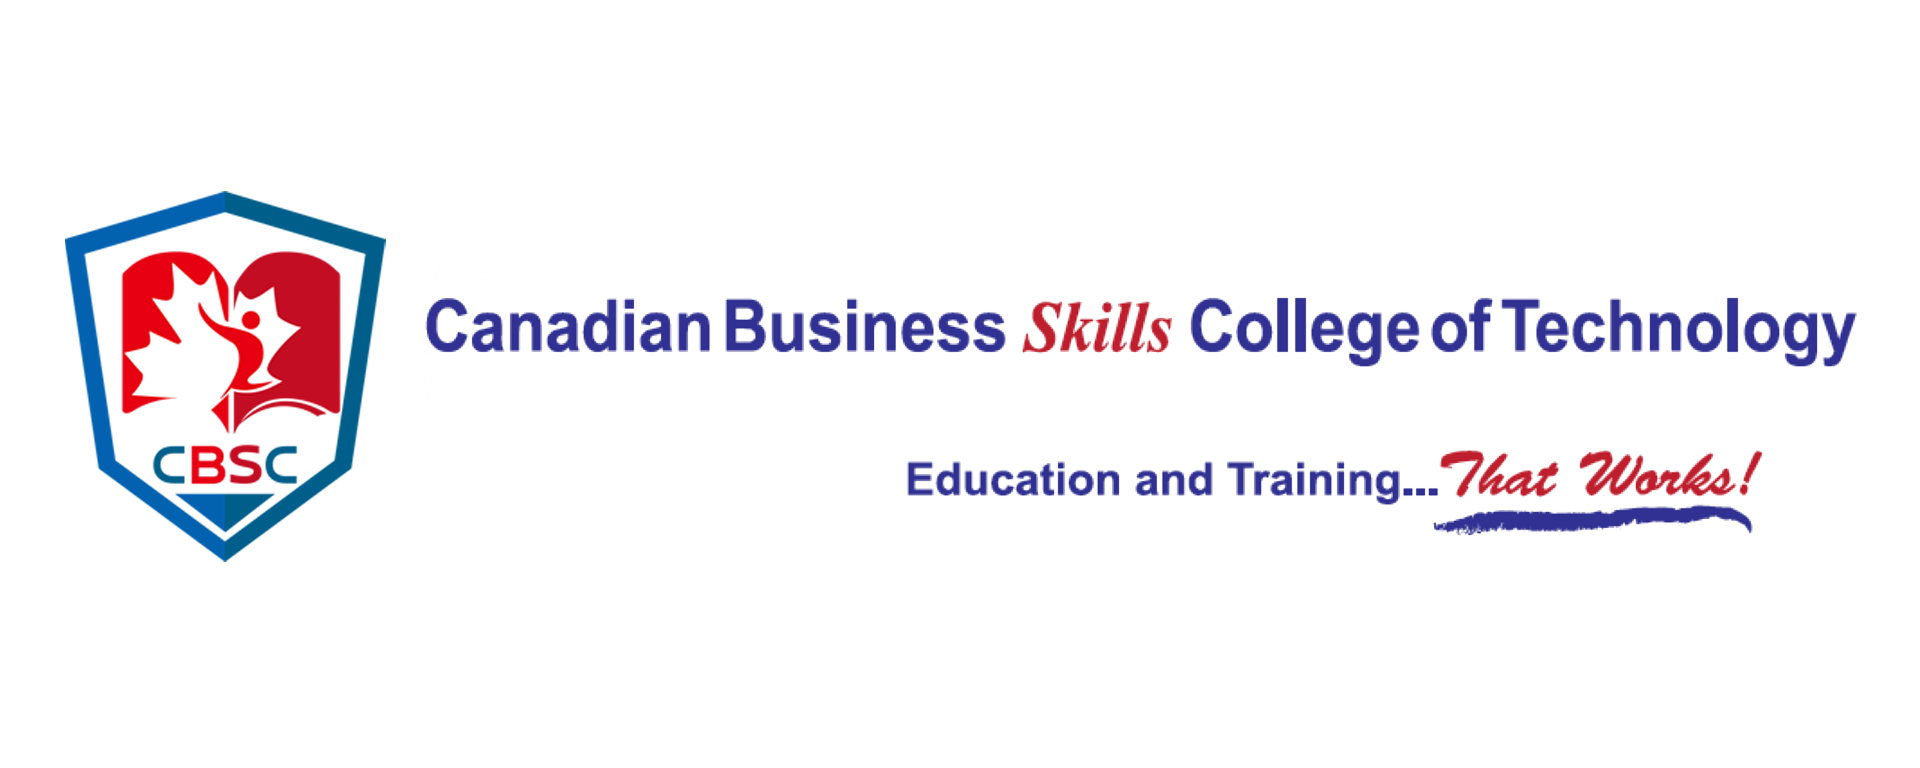 Canadian Business Skills College of Technology - Technology